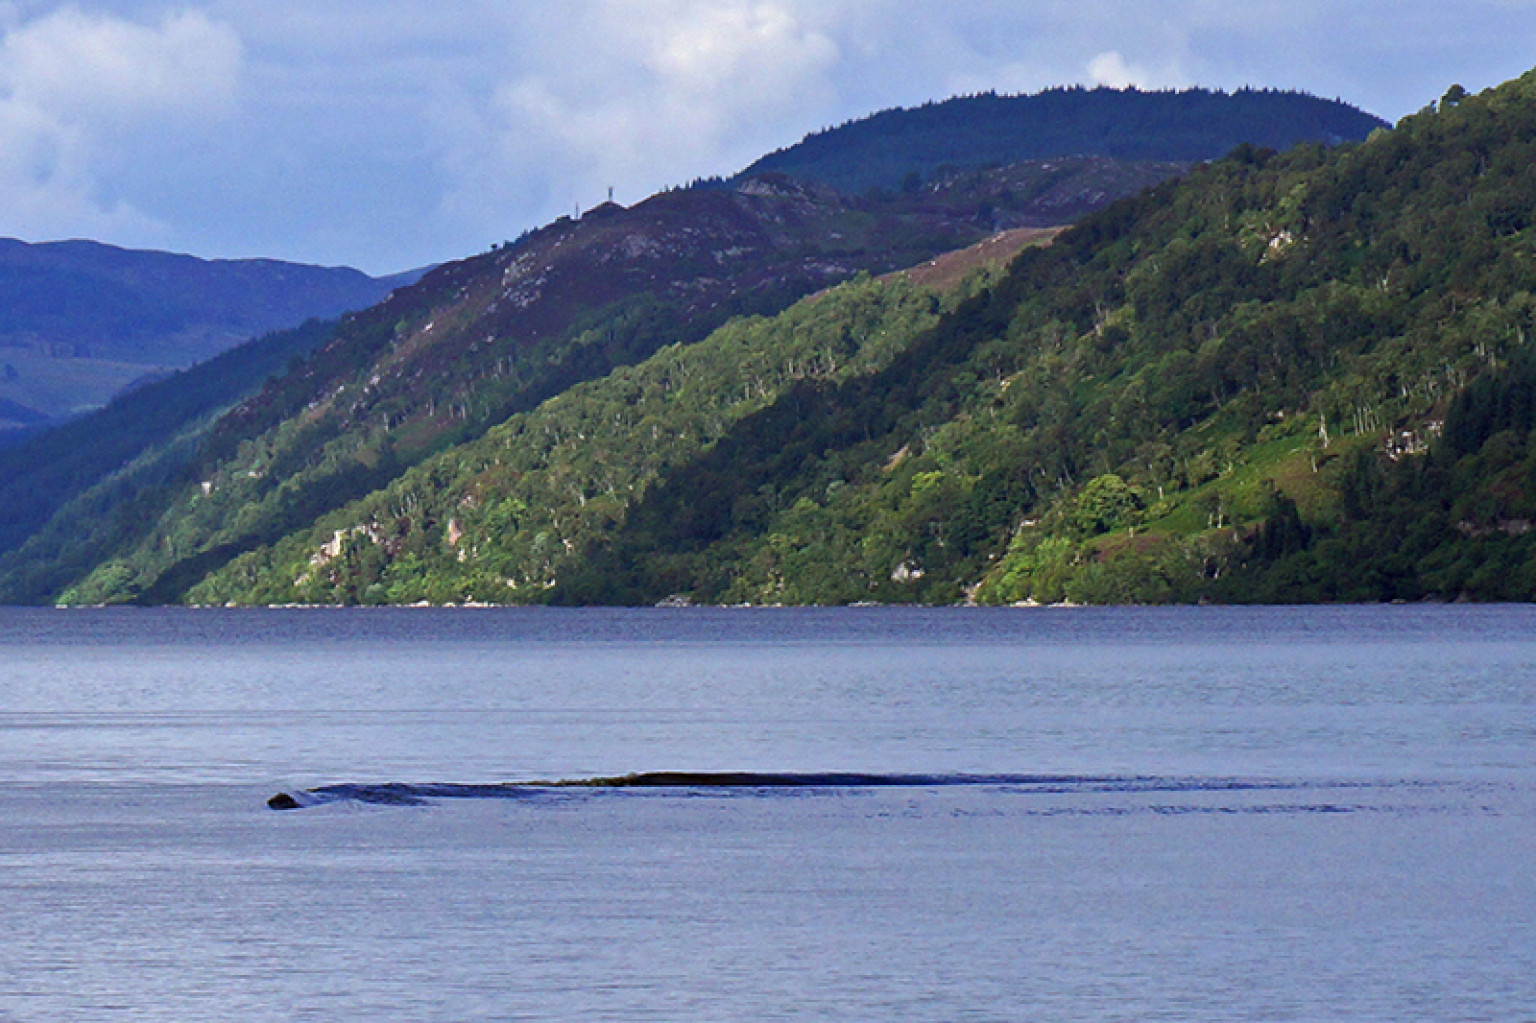 Loch Ness Monster Sightings 2014 O-lochness-facebook.jpg